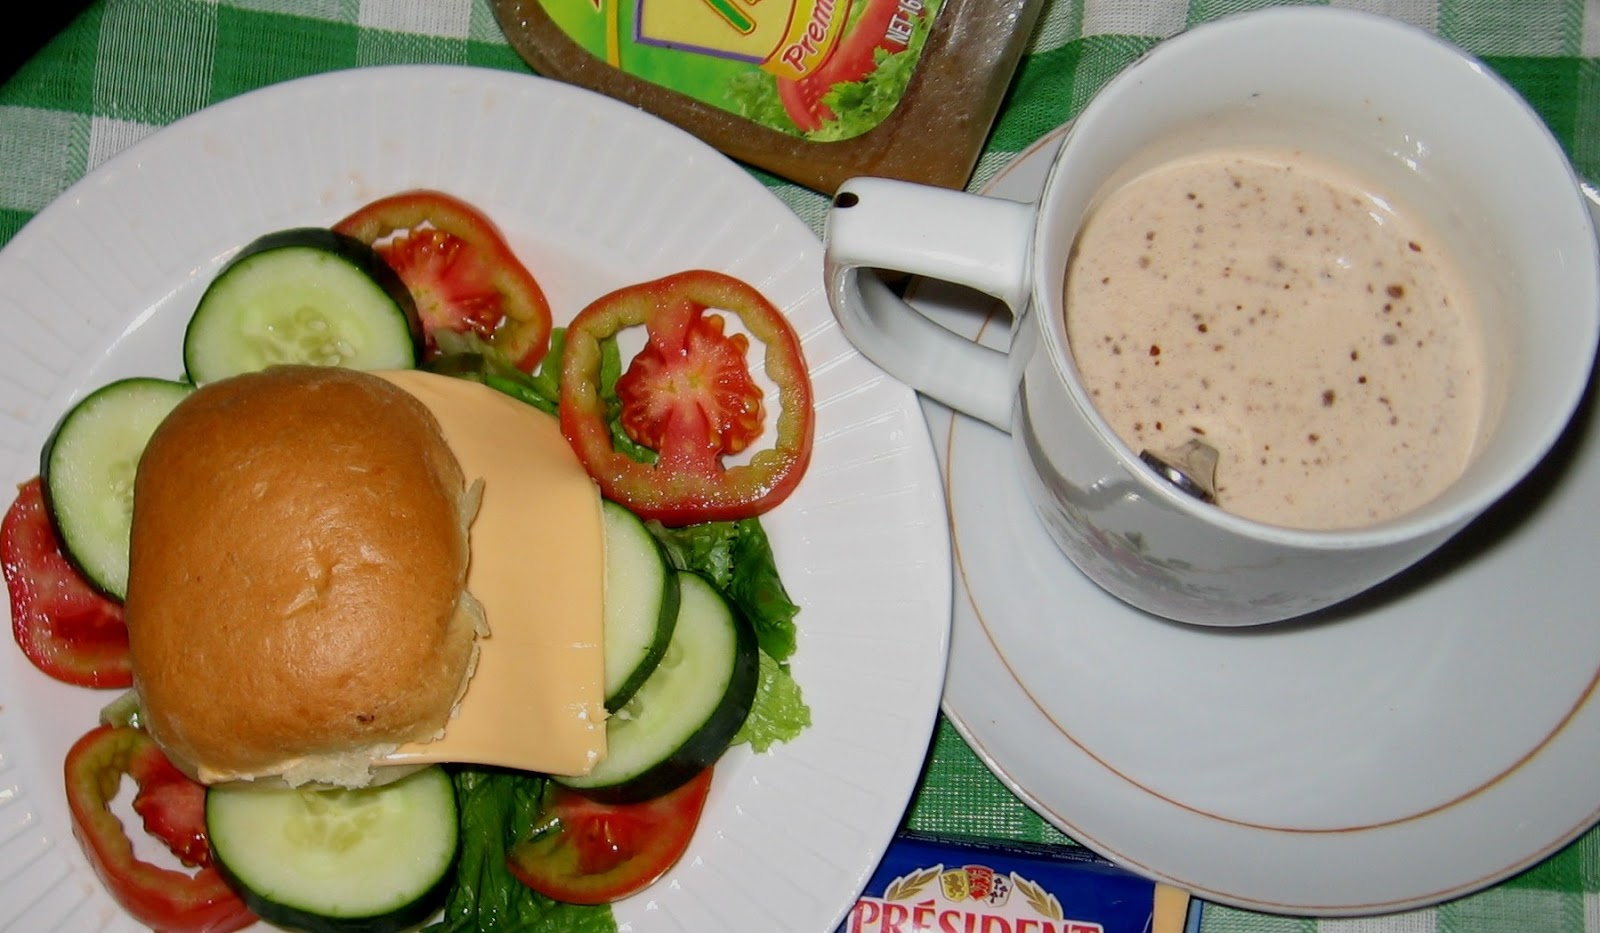 Healthy nigerian breakfast tips 1 and 2 bread rolls with cheese vegetable salad and beverages forumfinder Image collections